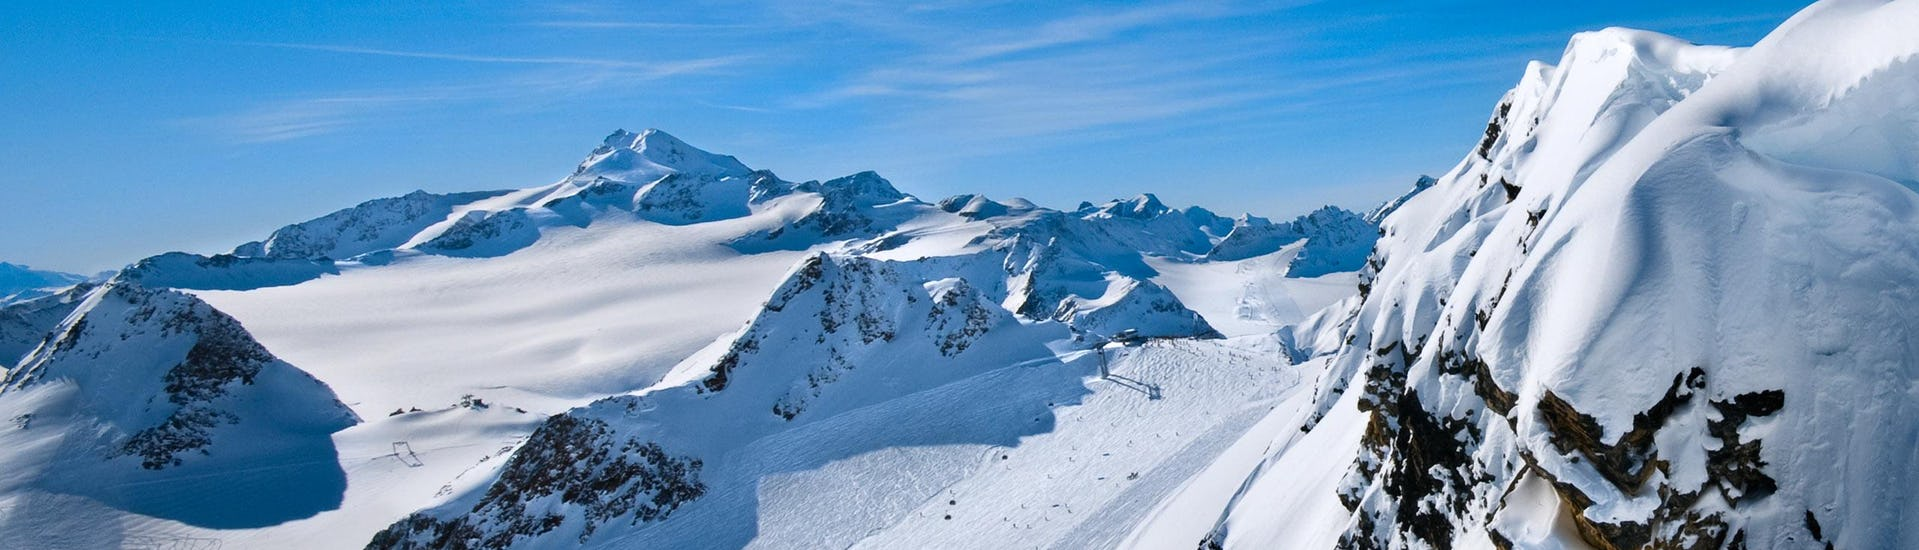 A view of a snowy mountain top in the ski resort of Villaroger, where ski schools gather to start their ski lessons.